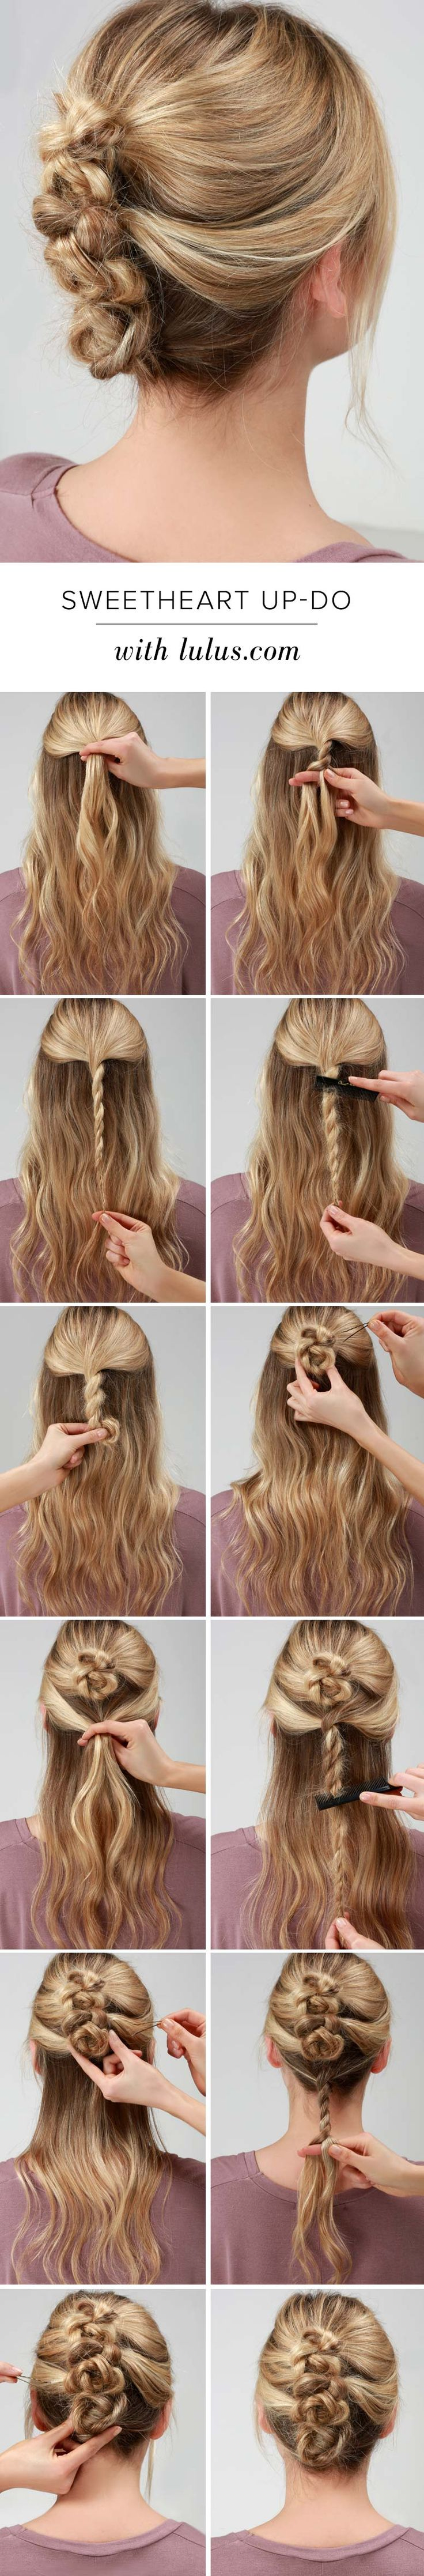 LuLu*s How-To: Sweetheart Twisted Up-Do